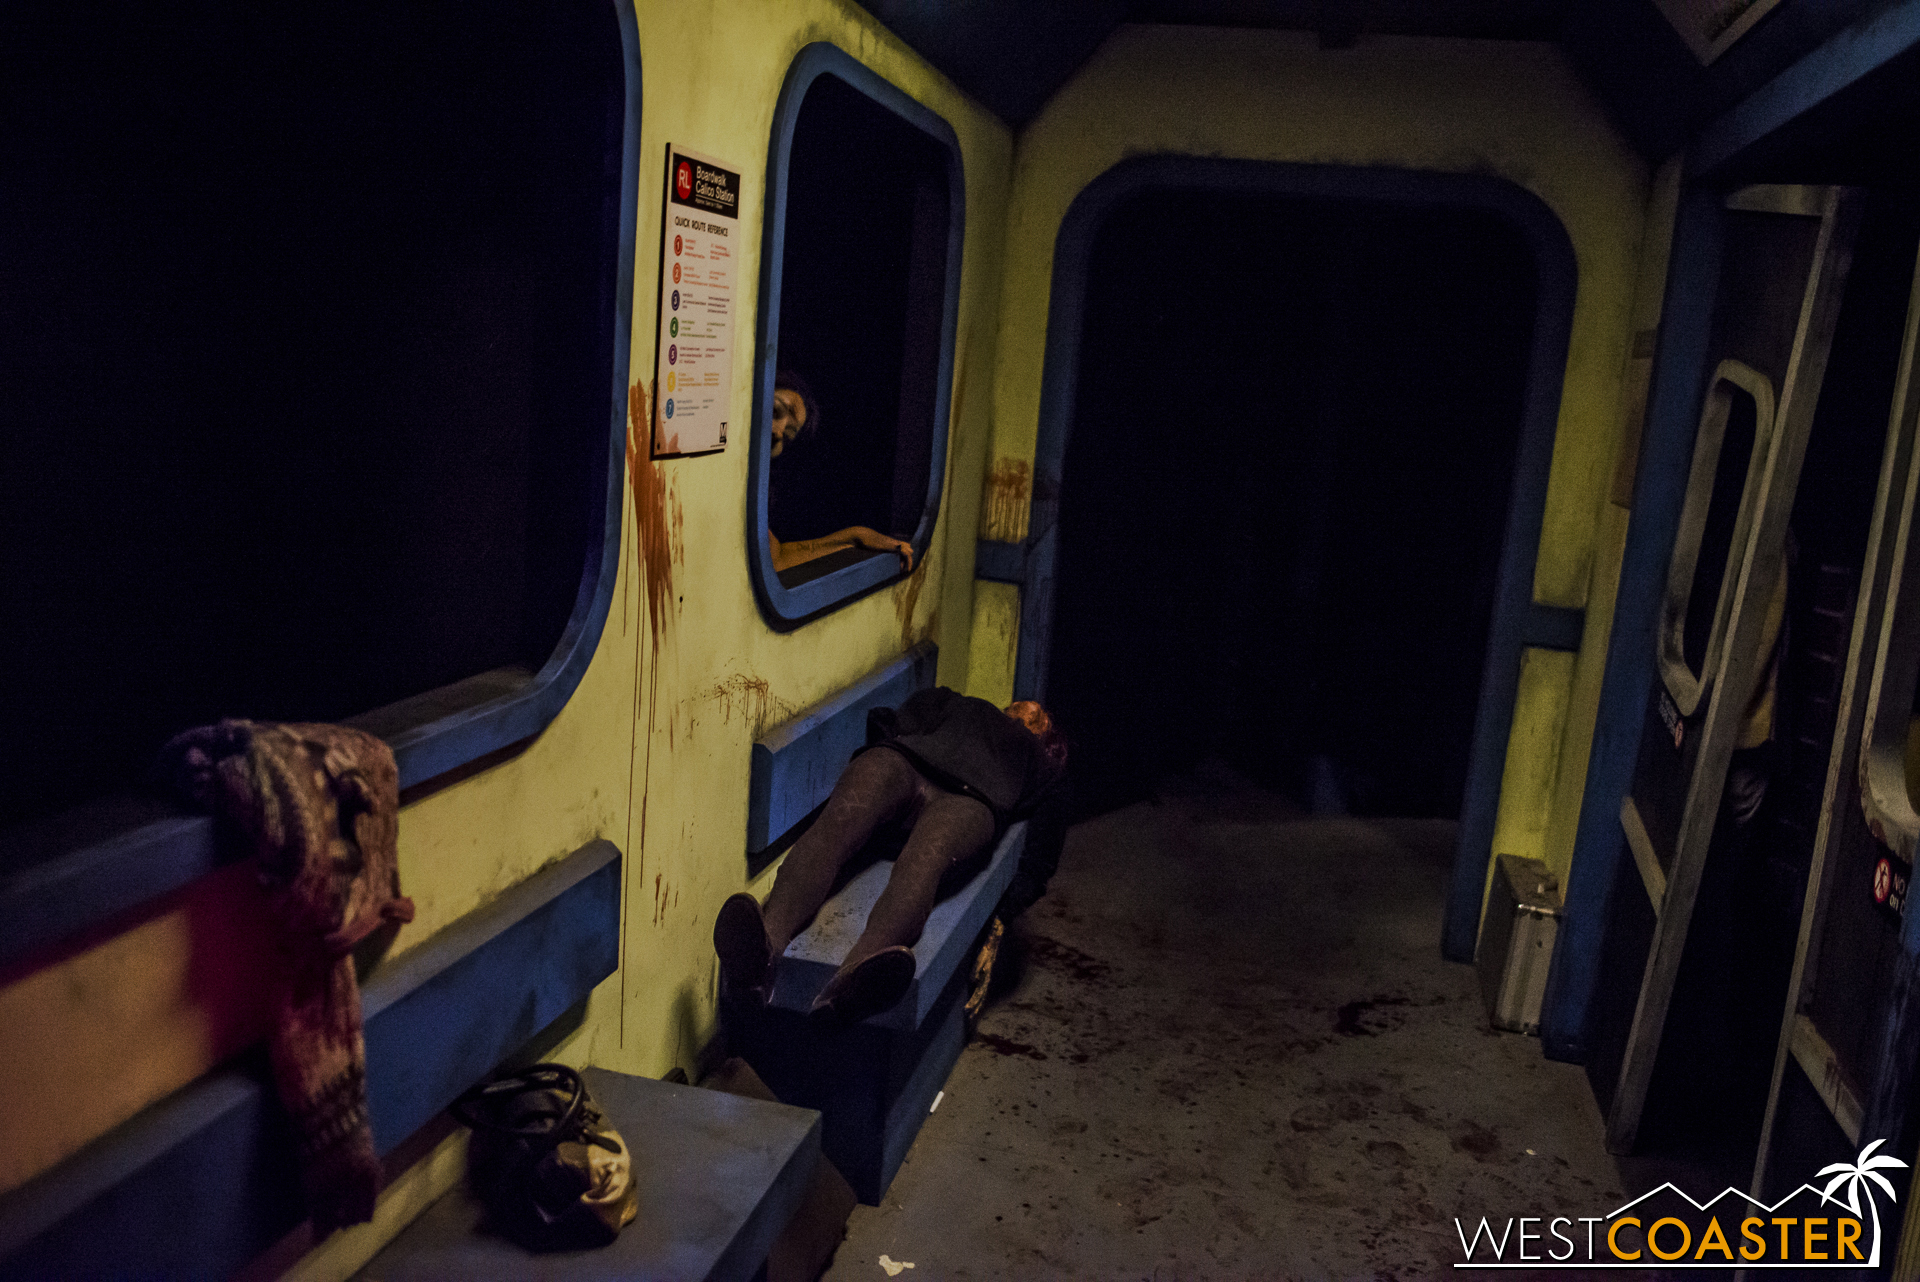 Going through subway cars, with zombies attacking at random.